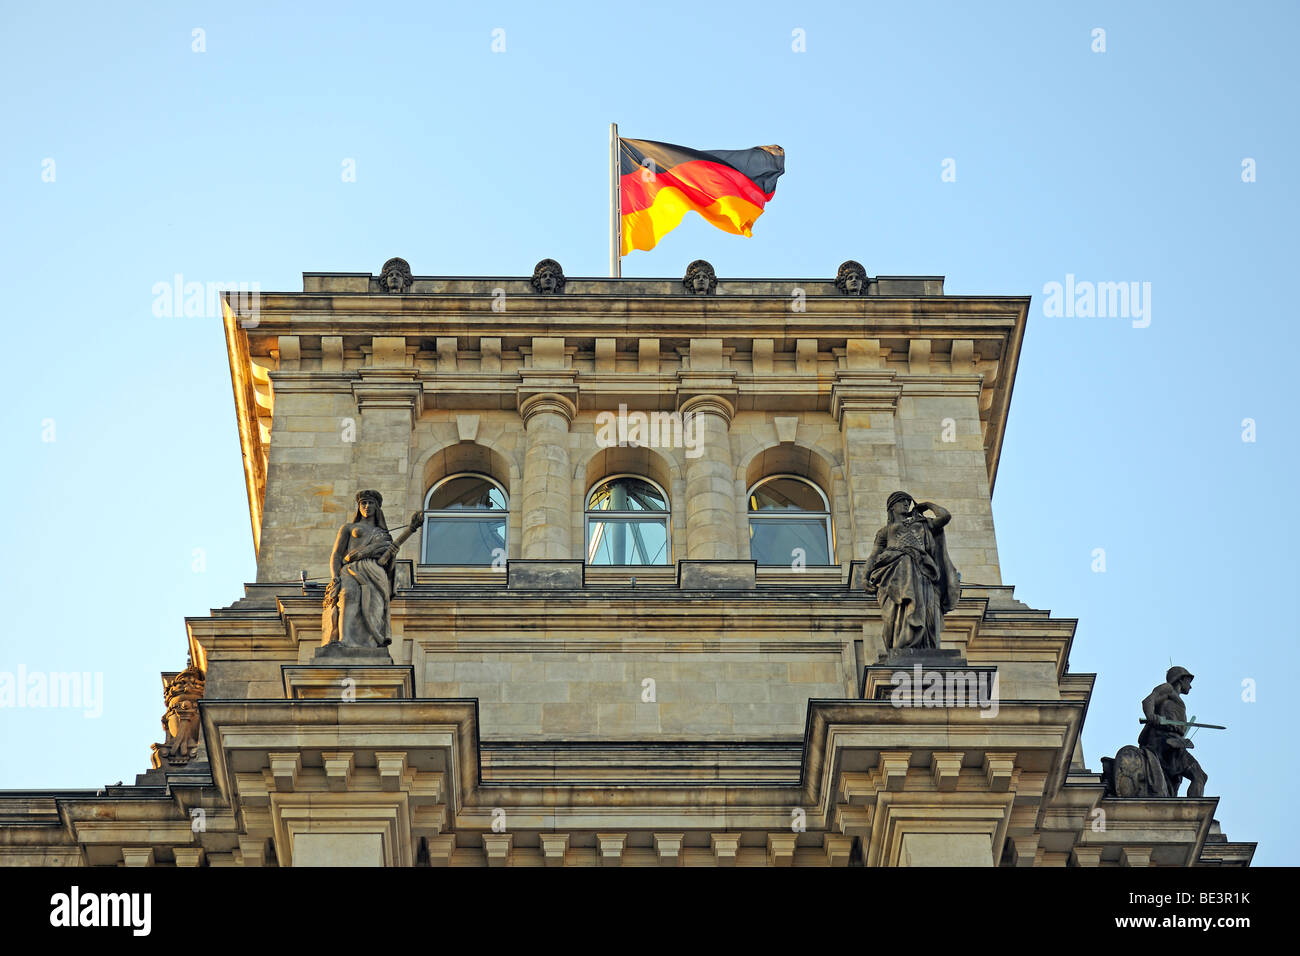 Flag of Germany on one of the towers of the Reichstag building in Berlin, Germany, Europe Stock Photo